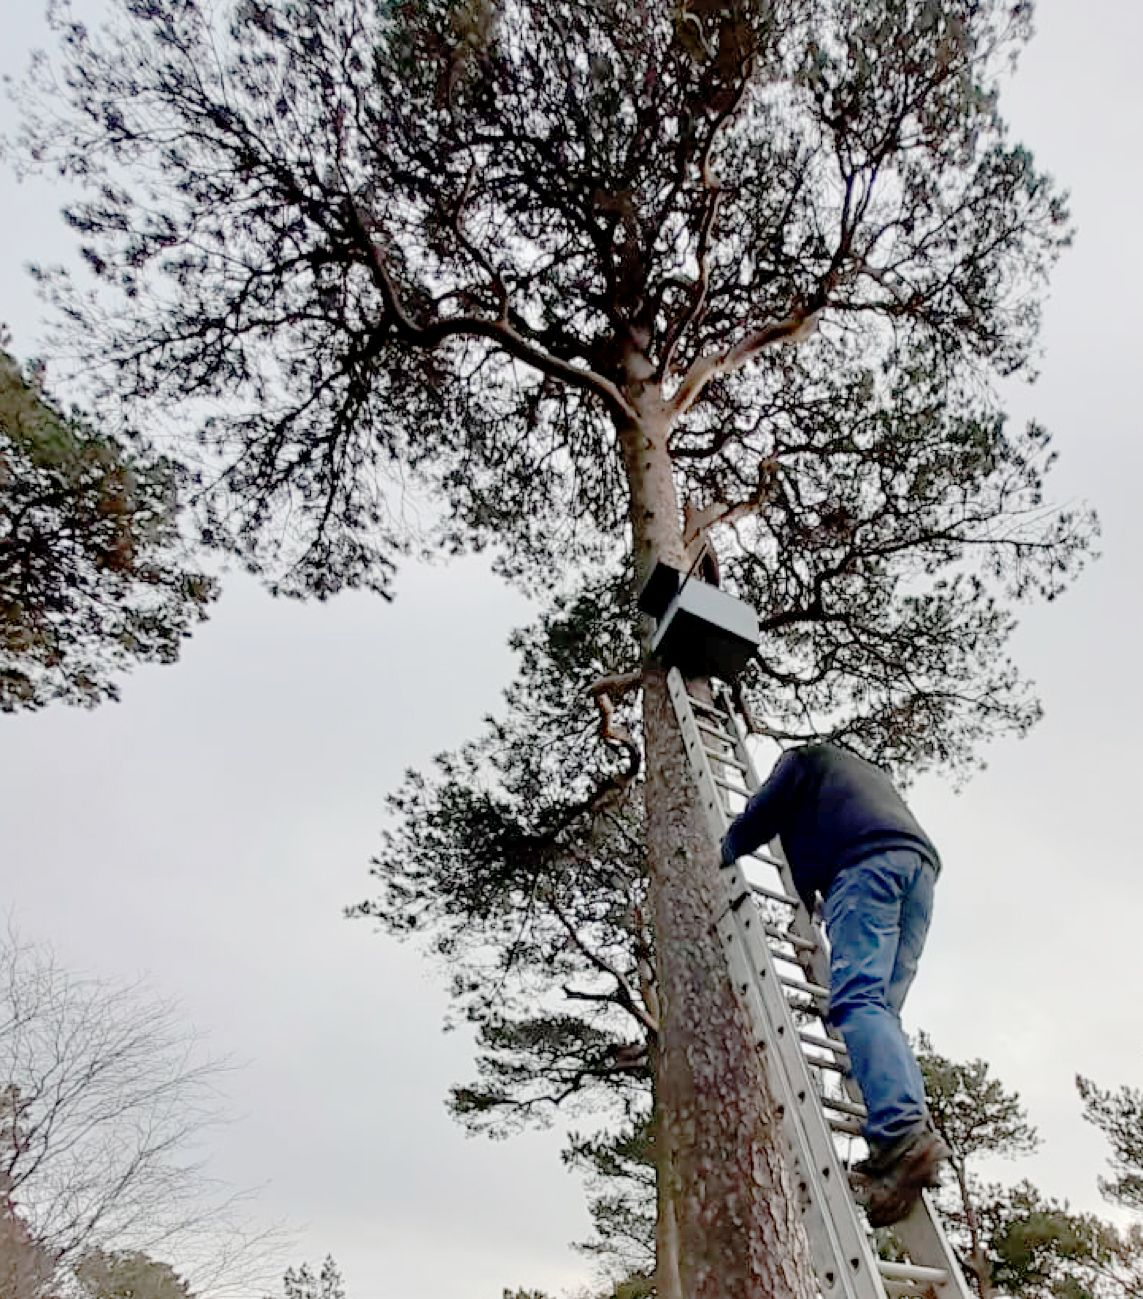 TEAMWORK: Andy scales the ladders to put up the kestrel nesting box on a Cave Hill pine tree